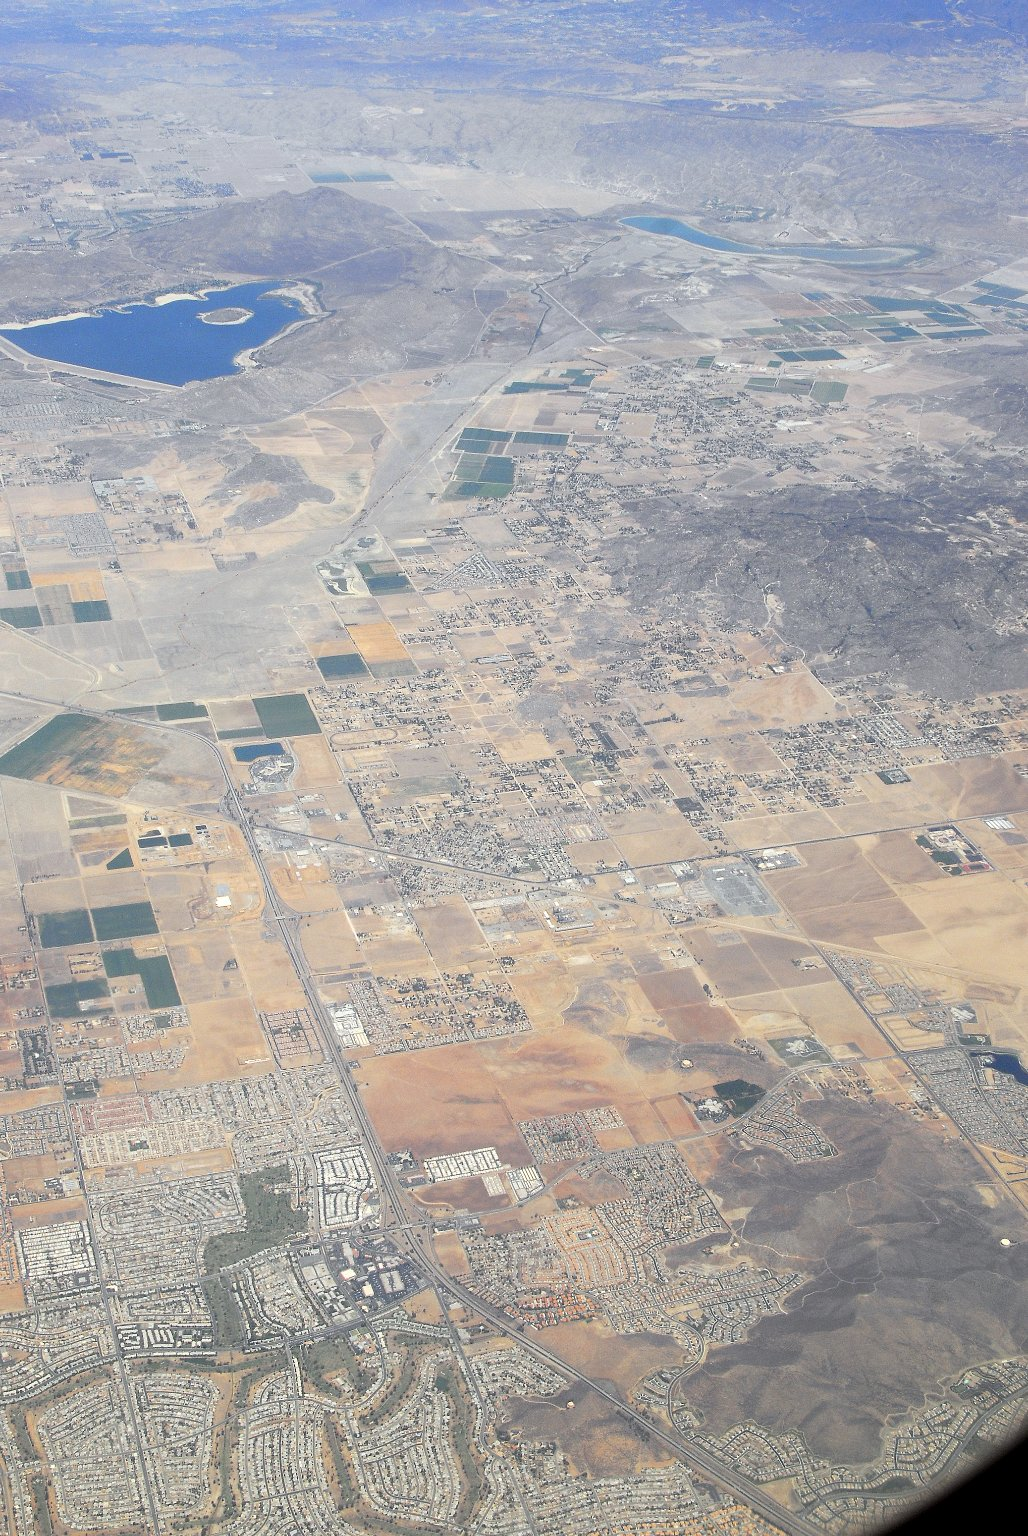 Los Angeles: Aerial (from Airplane) Topographic Views